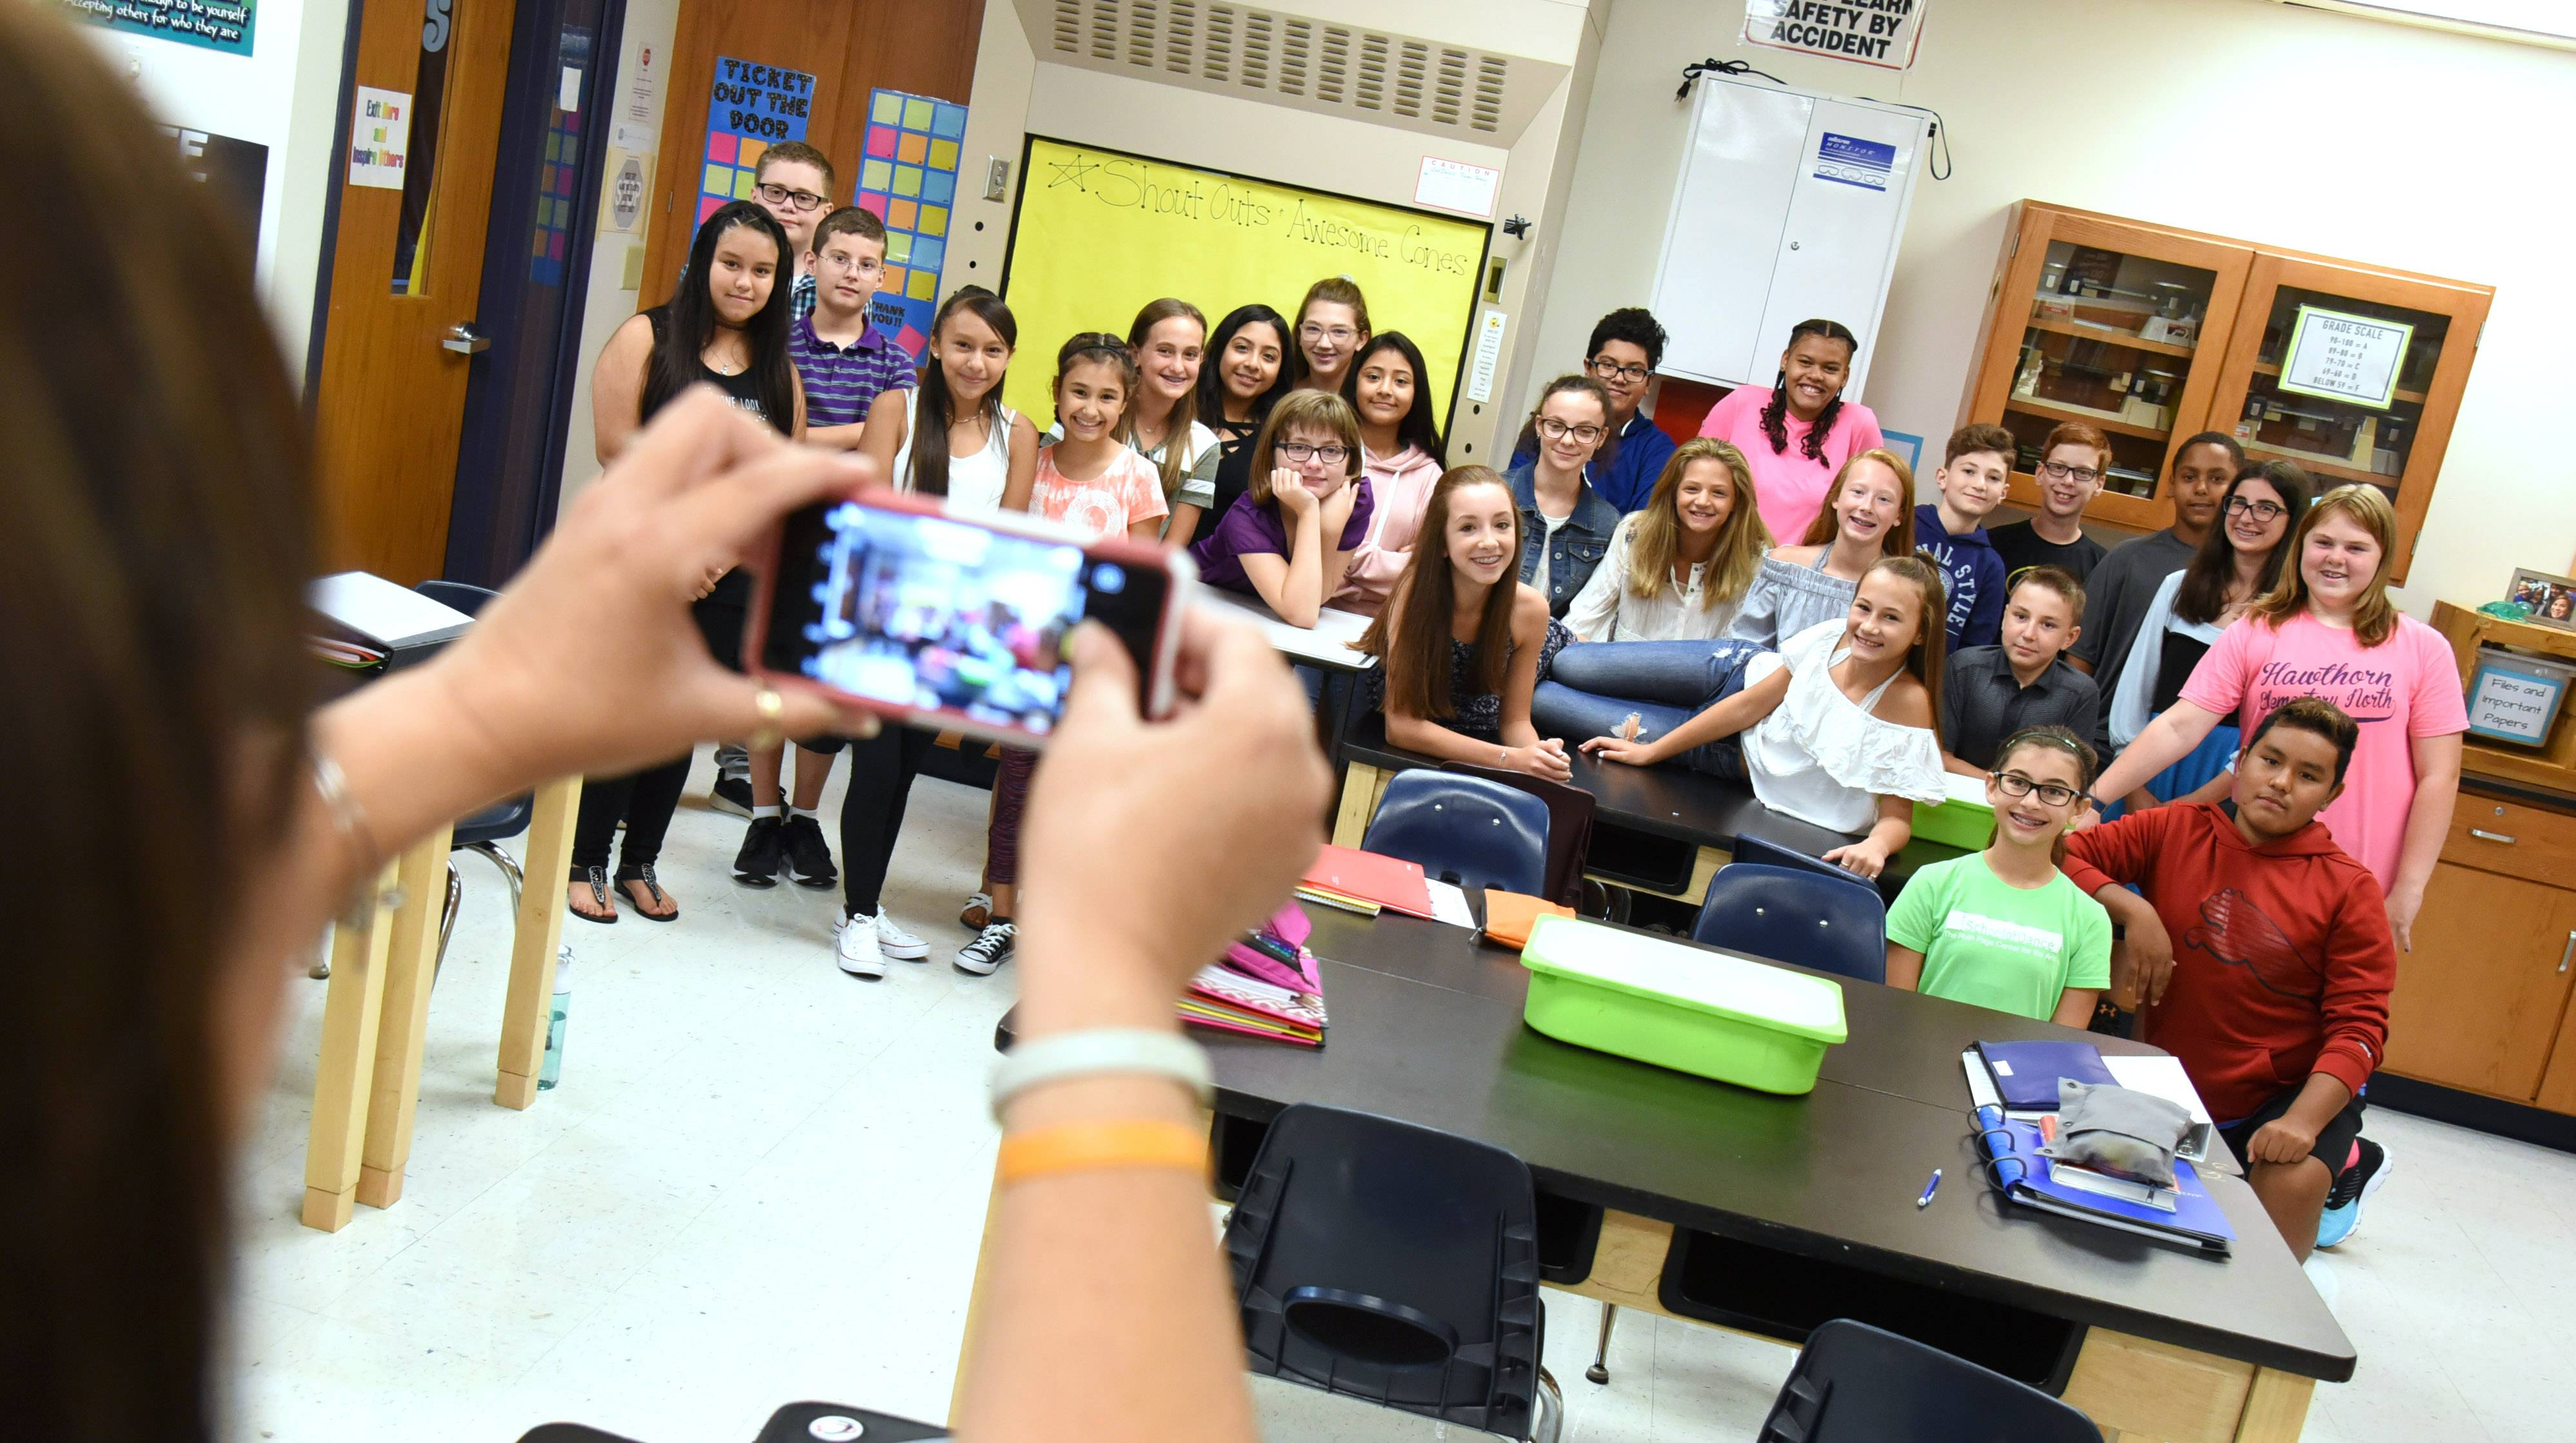 Hawthorn Middle School North teacher Cathi Neuman takes a group photo of one of the seventh-grade science classes she is teaching this year. Hawthorn District 73 held its first day of classes on Wednesday.